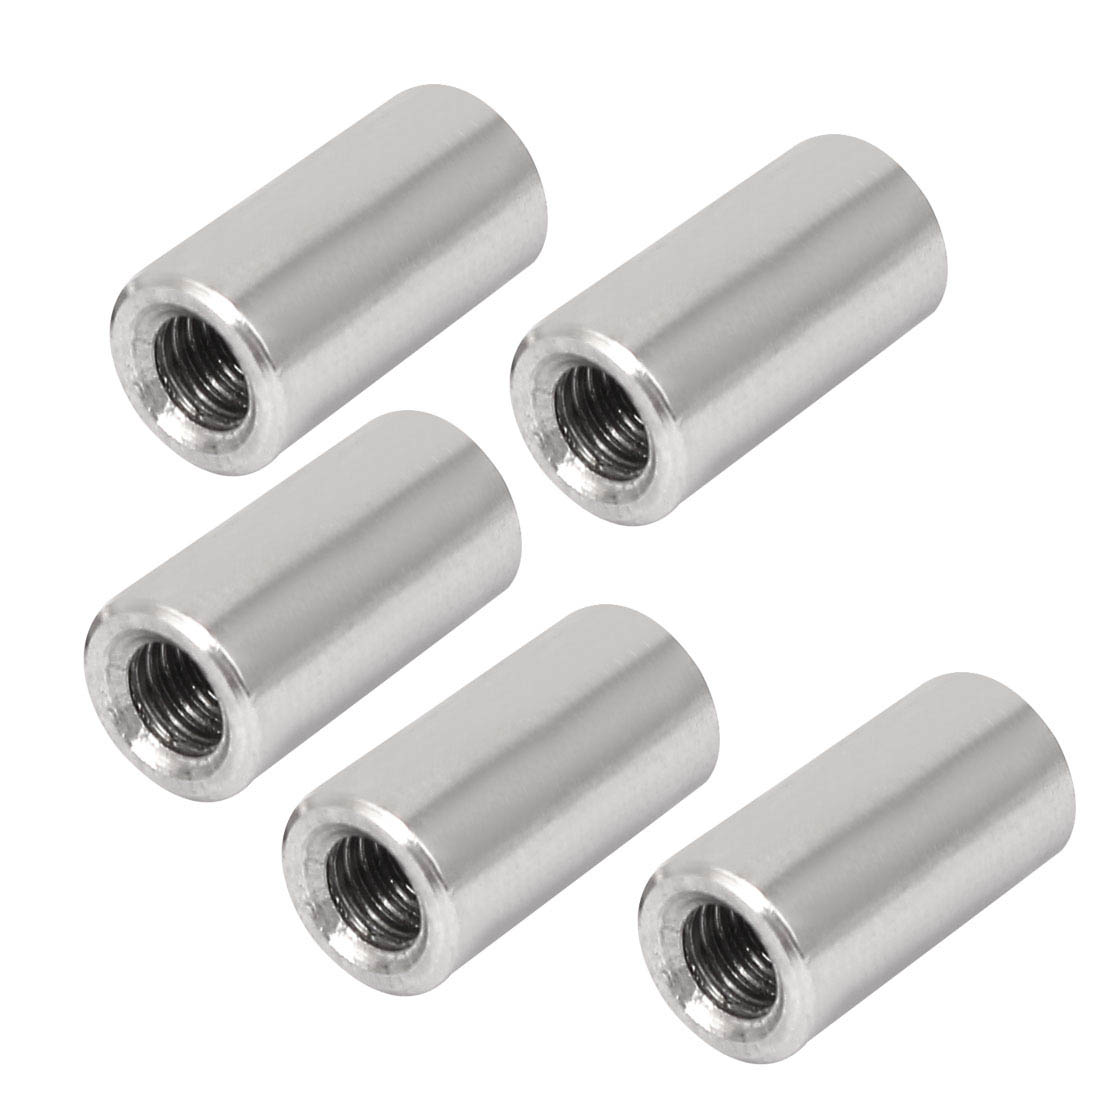 Round Connector Nuts 304 stainless steel Threaded Sleeve Rod bar Stud Round Connector Nuts 10Pcs утюг russell hobbs light easy 23590 56 2400вт синий белый